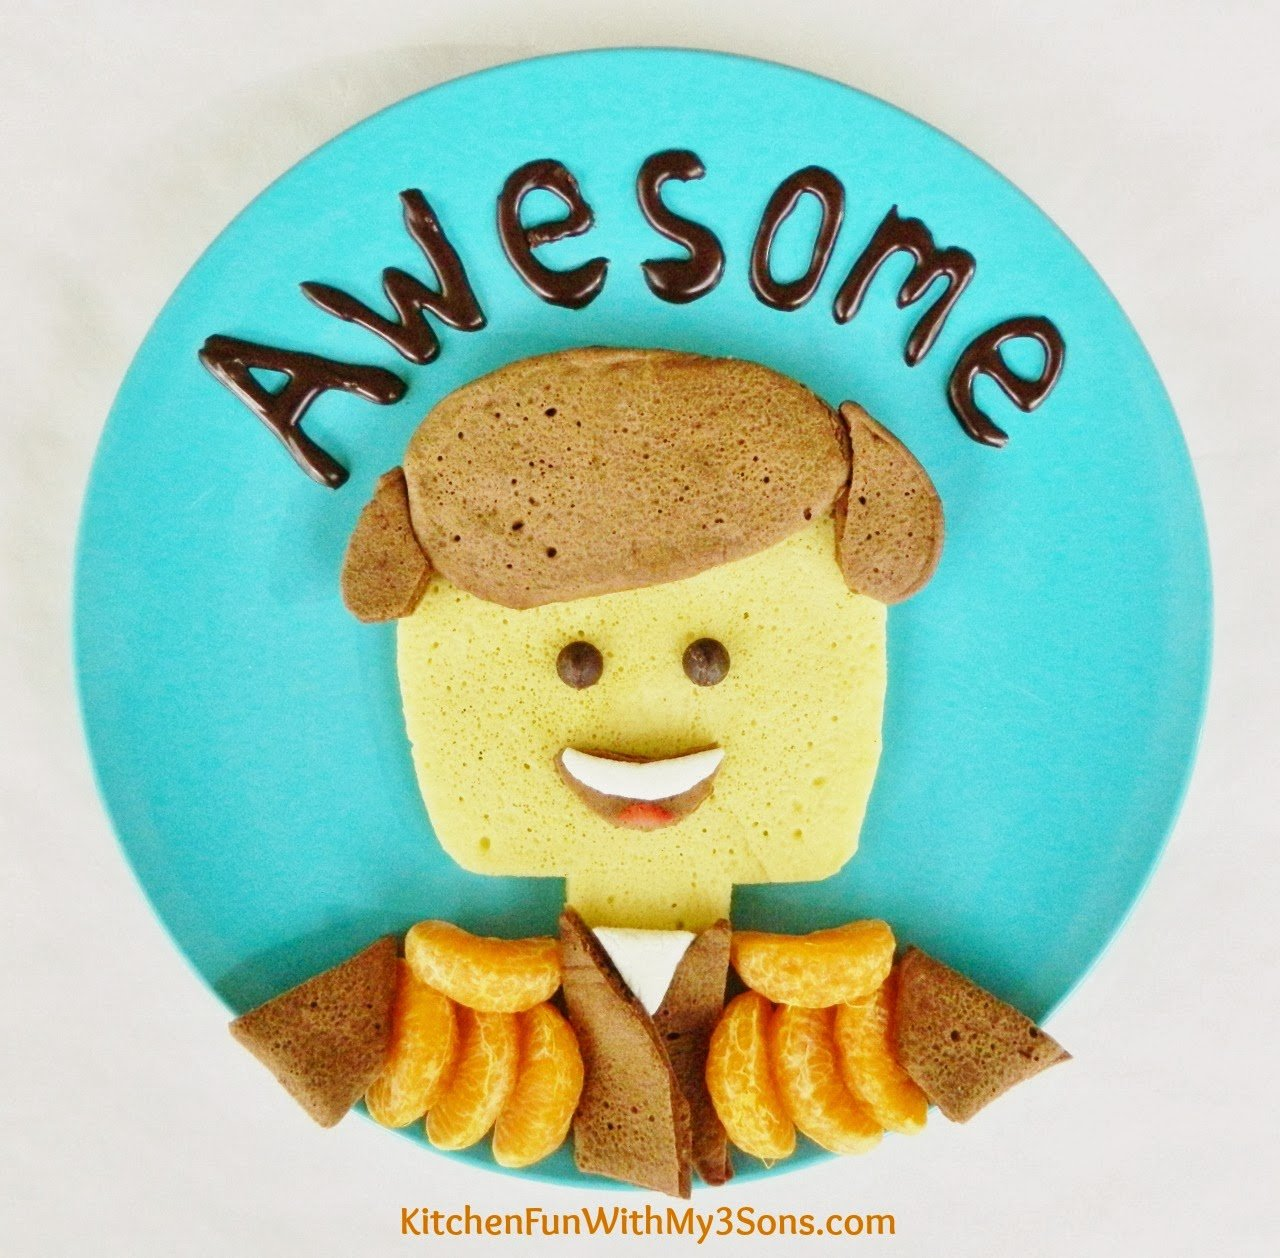 20 Amazing Ideas That Will Make Your House Awesome: Awesome Lego Movie Pancakes For Breakfast